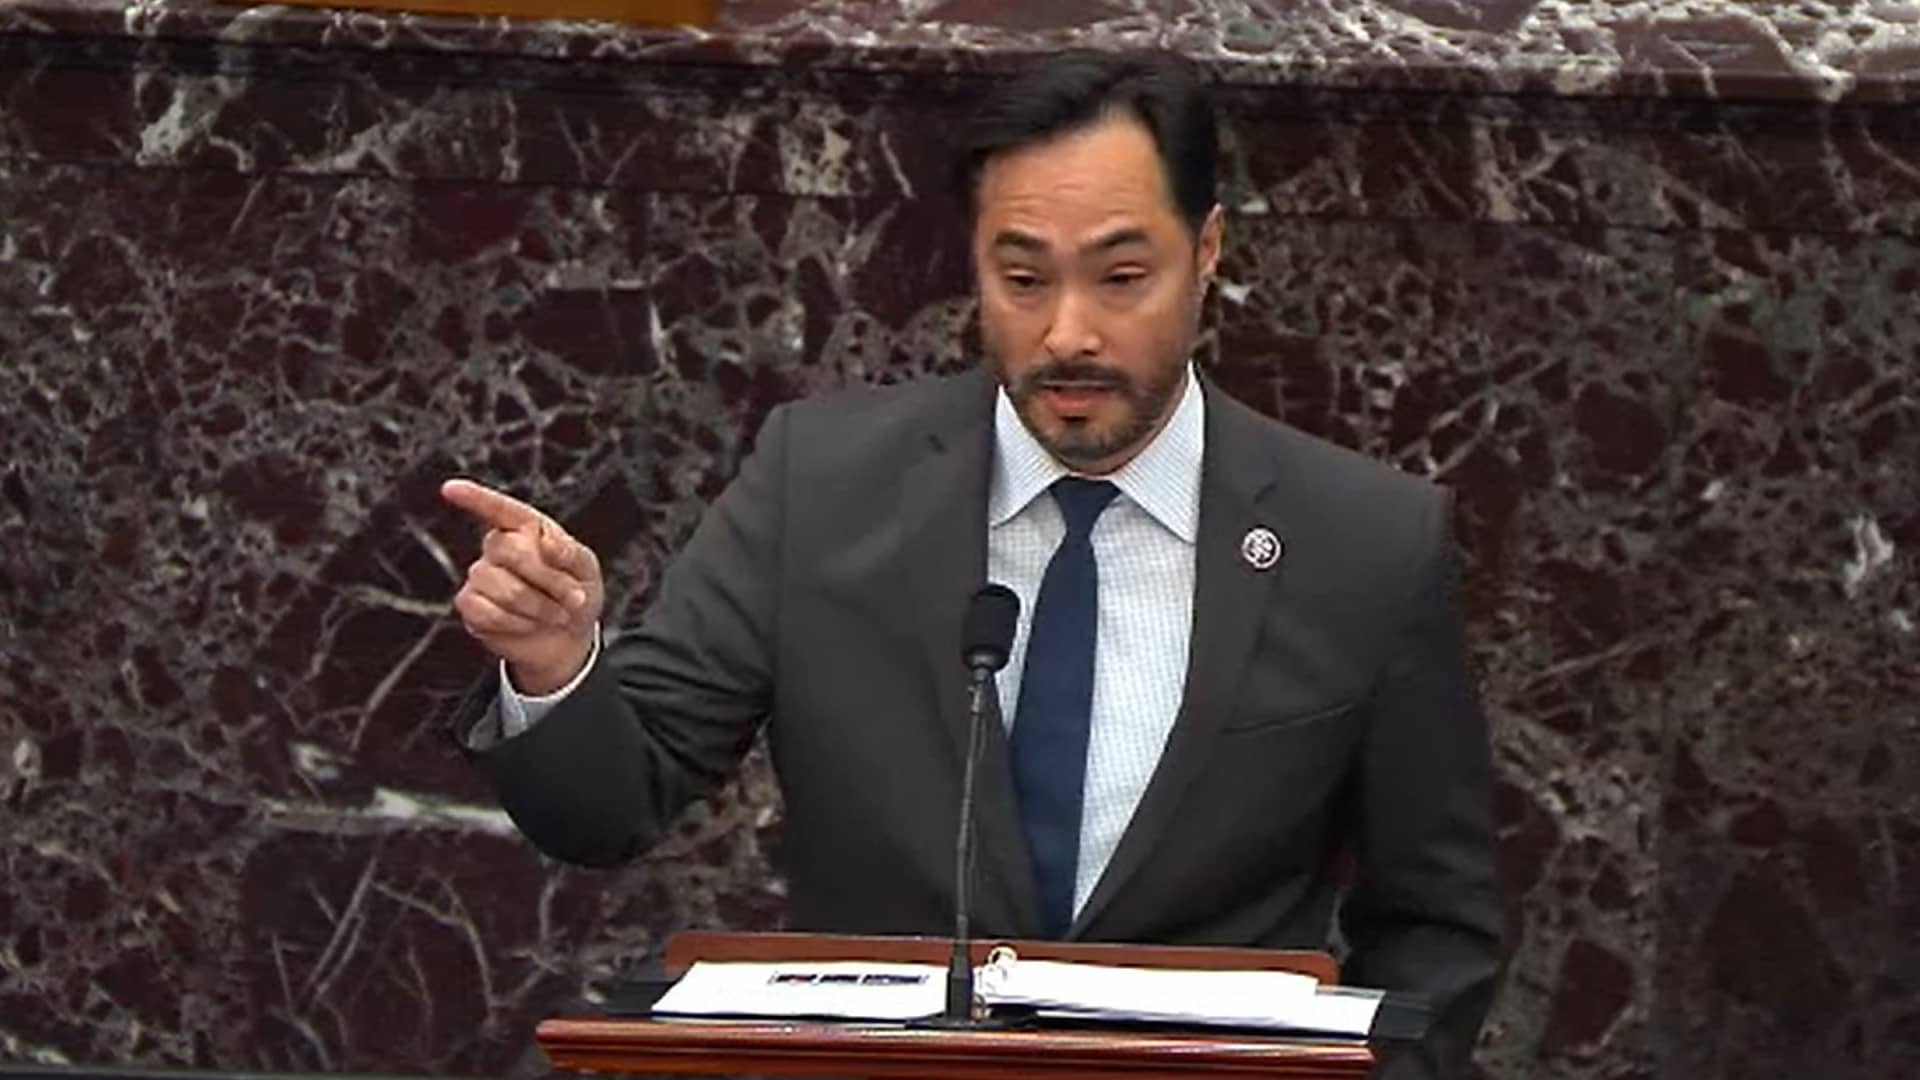 In this screenshot taken from a congress.gov webcast, Impeachment Manager Rep. Joaquin Castro (D-TX) speaks on the second day of former President Donald Trump's second impeachment trial at the U.S. Capitol on February 10, 2021 in Washington, DC.